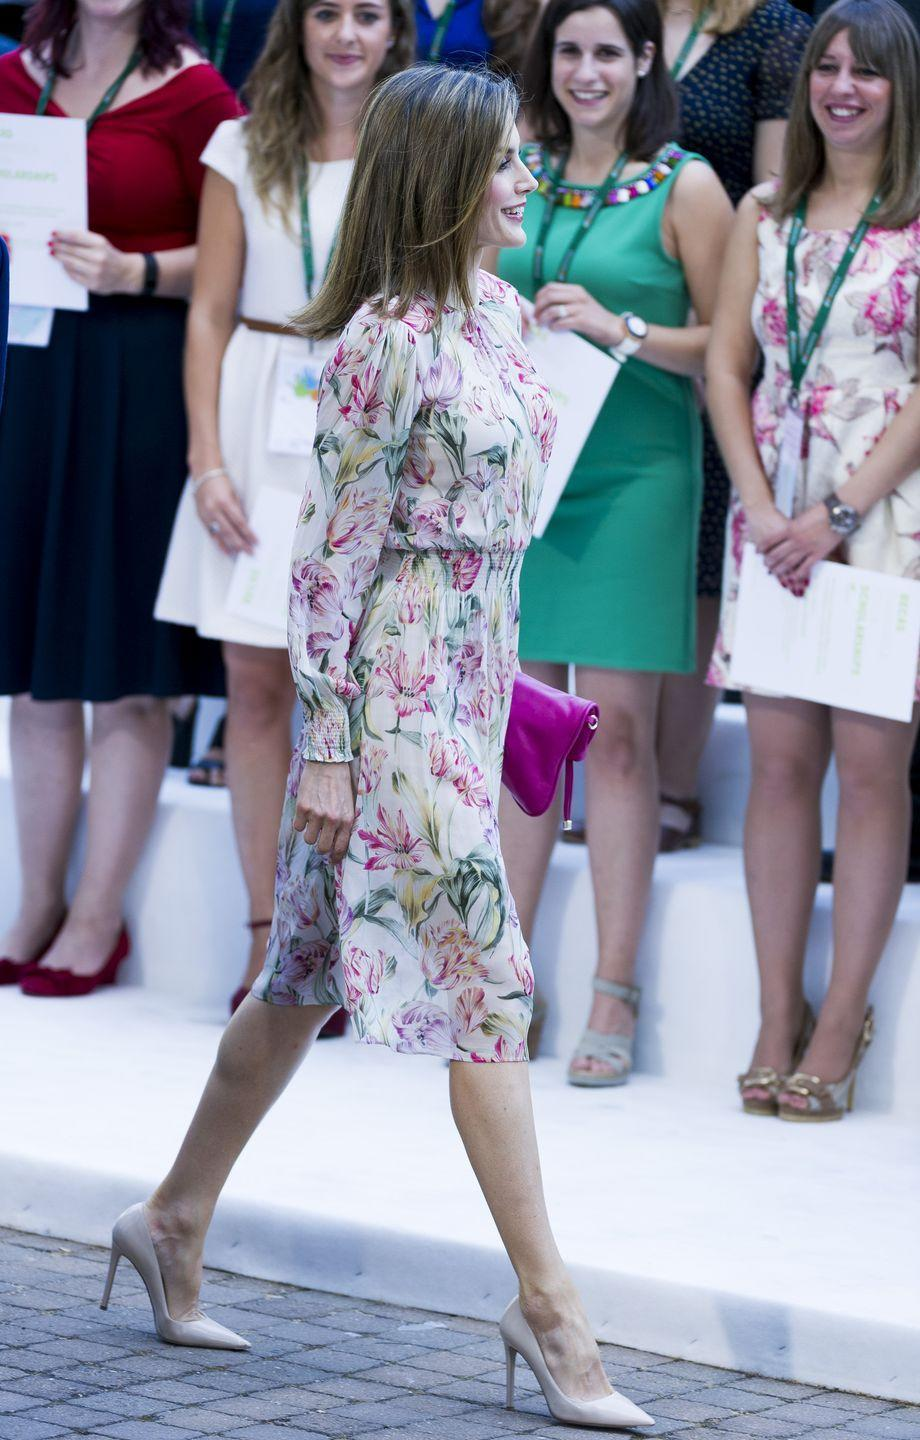 <p>Like many royals, she's a fan of pastels and romantic florals, she confidently mixes affordable brands and luxury pieces, such as the above dress from Zara, which she paired with Prada pumps.</p>